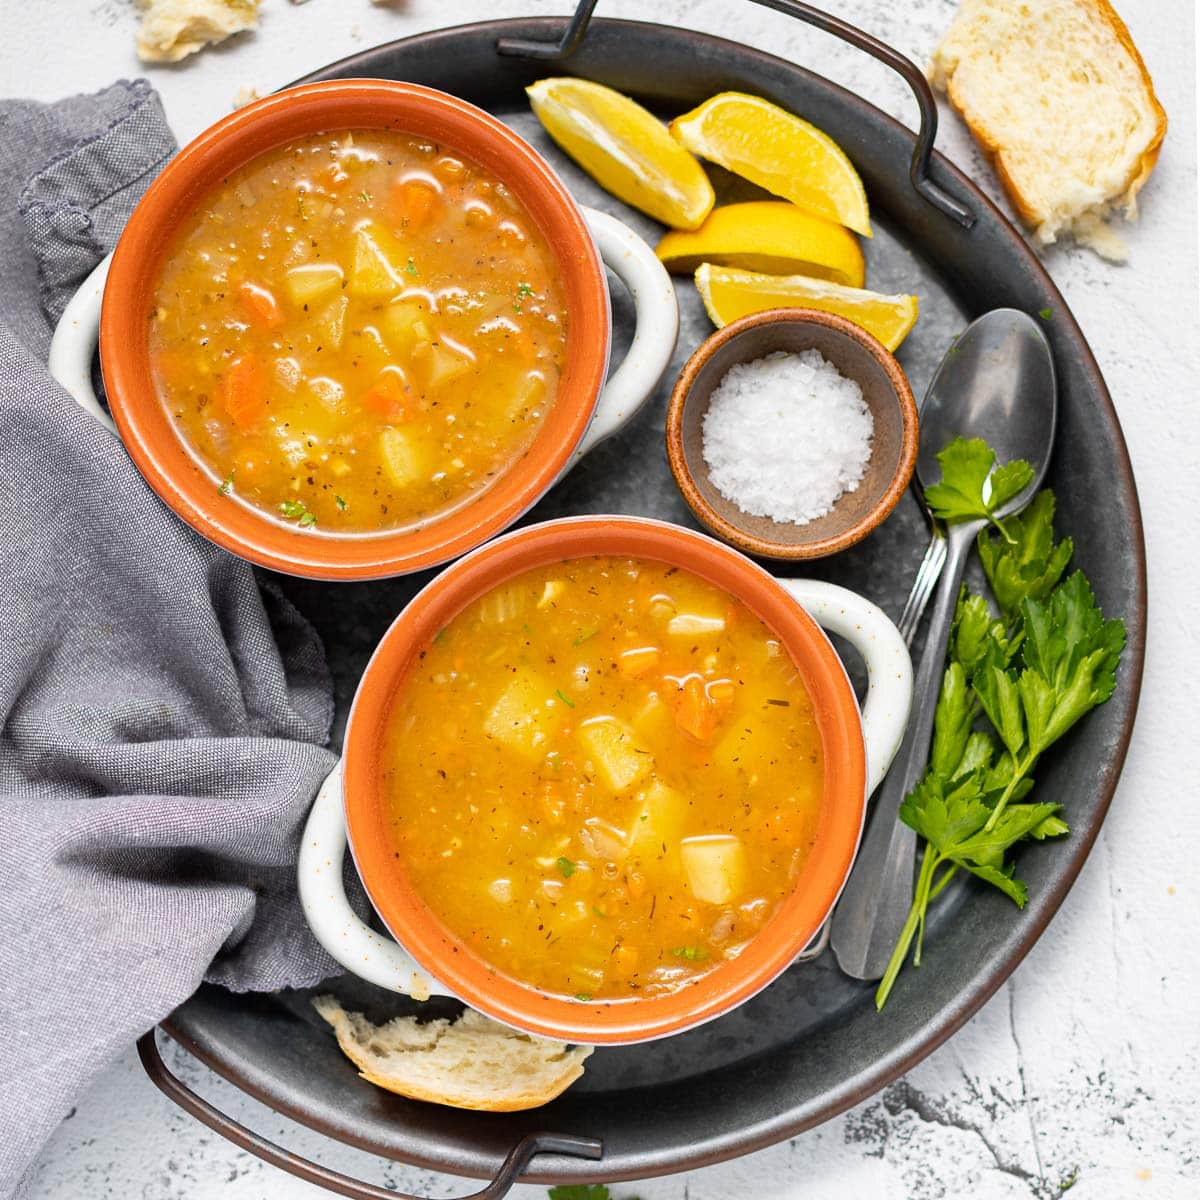 2 bowls of vegetable soup